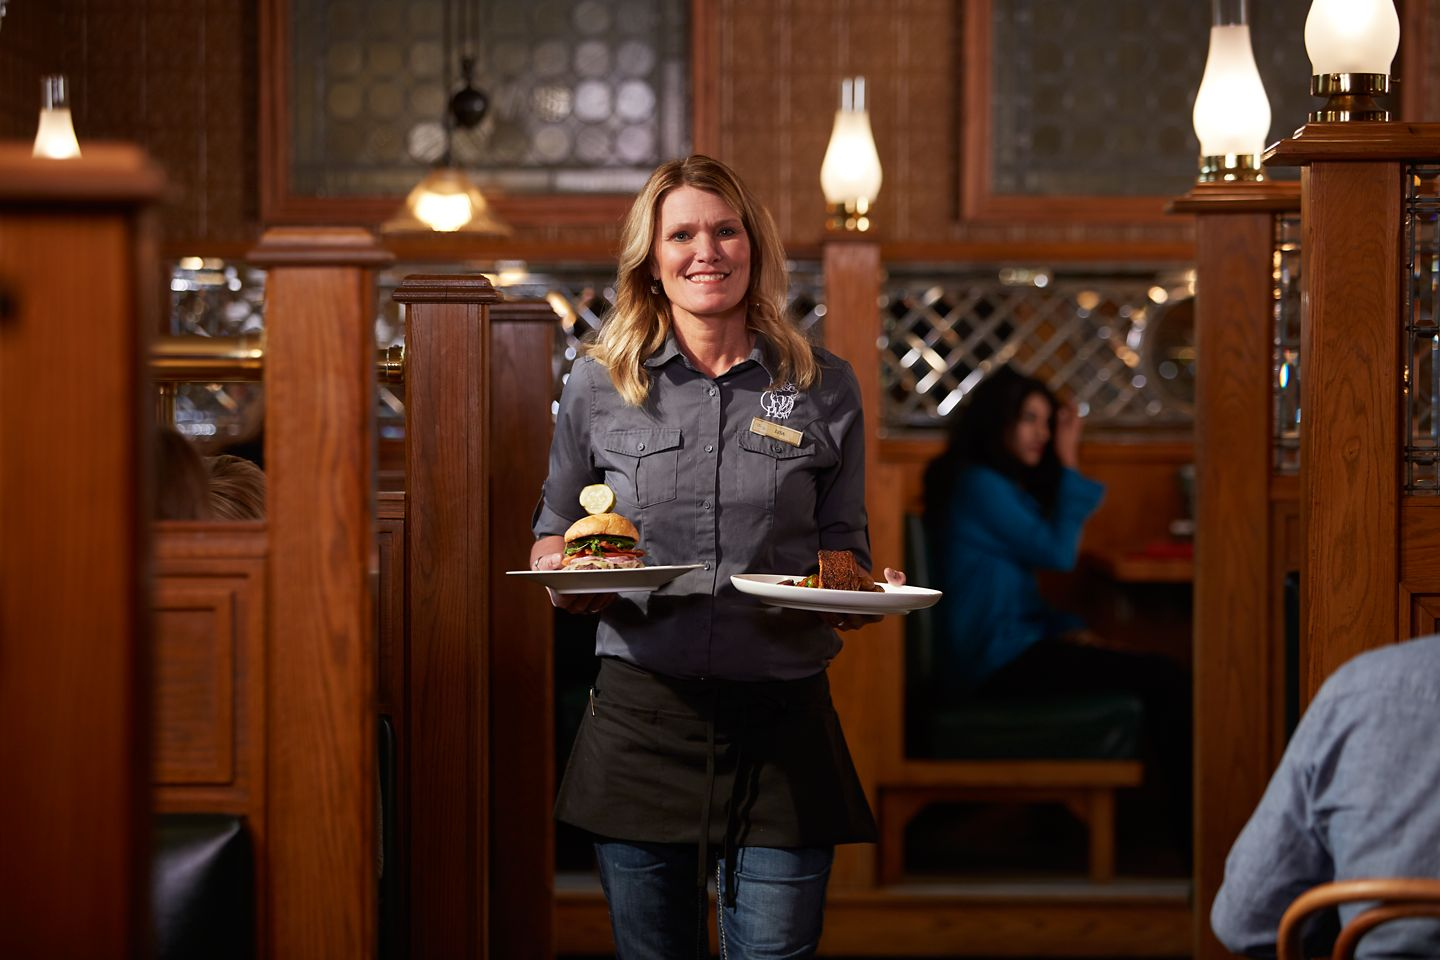 The Horse & Plow waitress delivering food